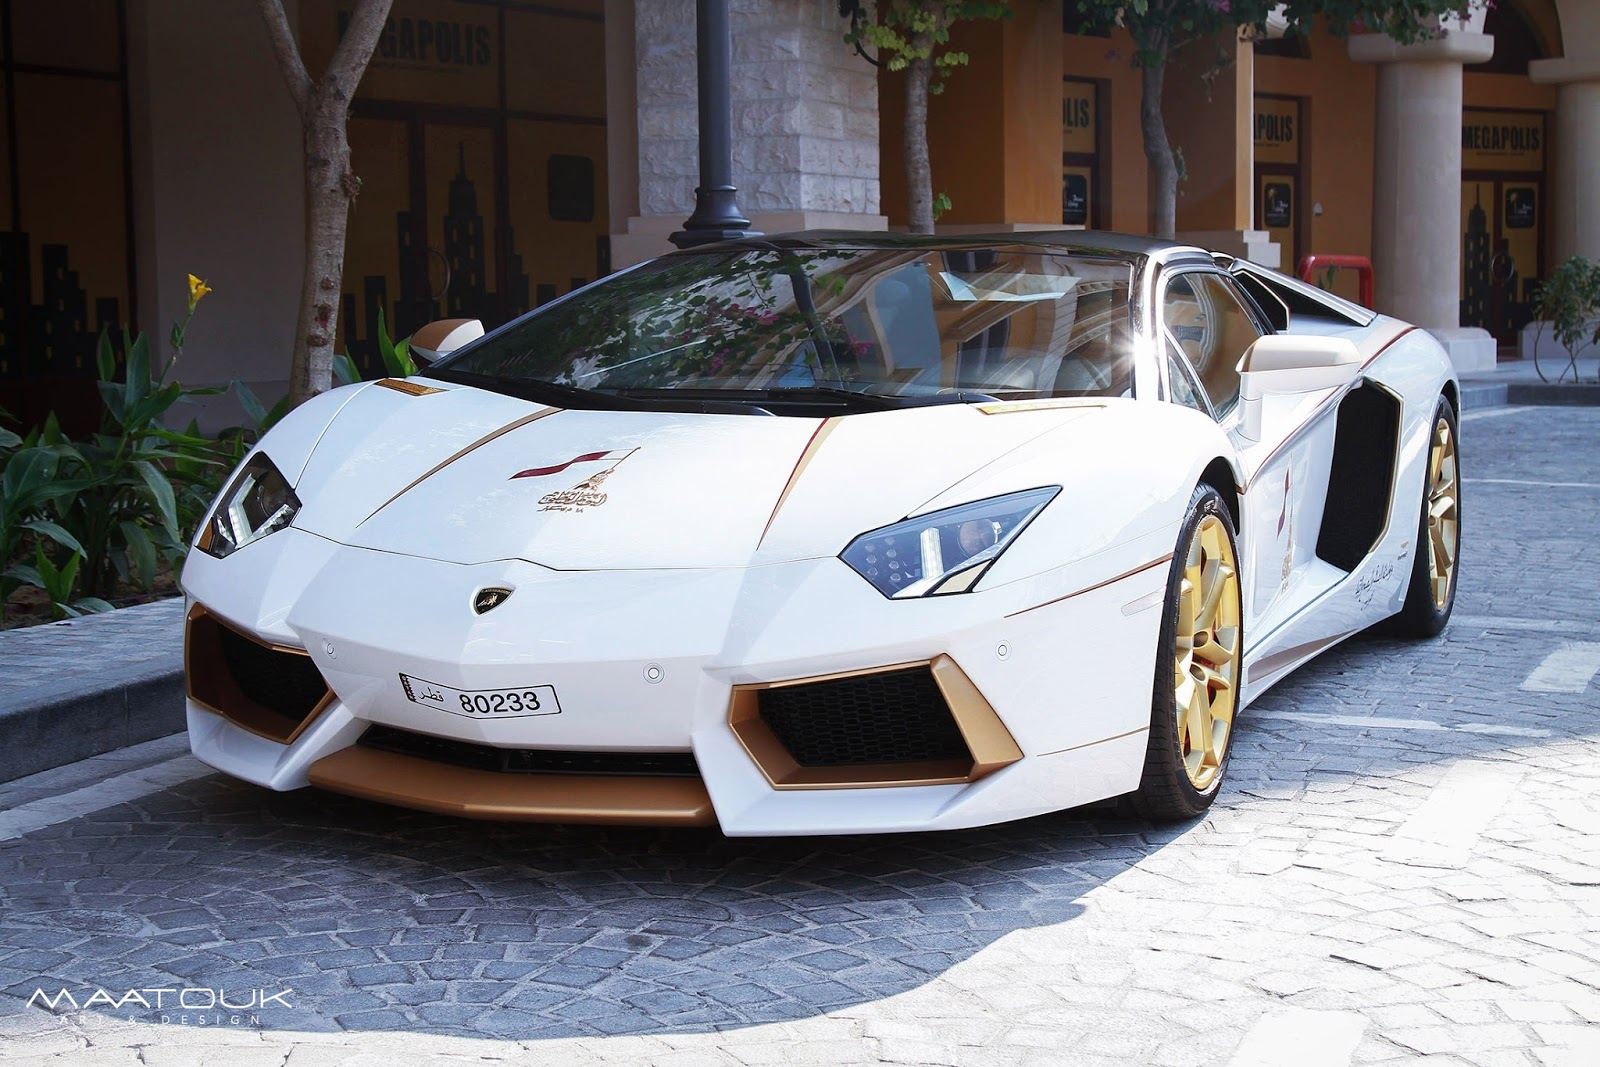 Meet the one-off gold plated Lamborghini Aventador ...